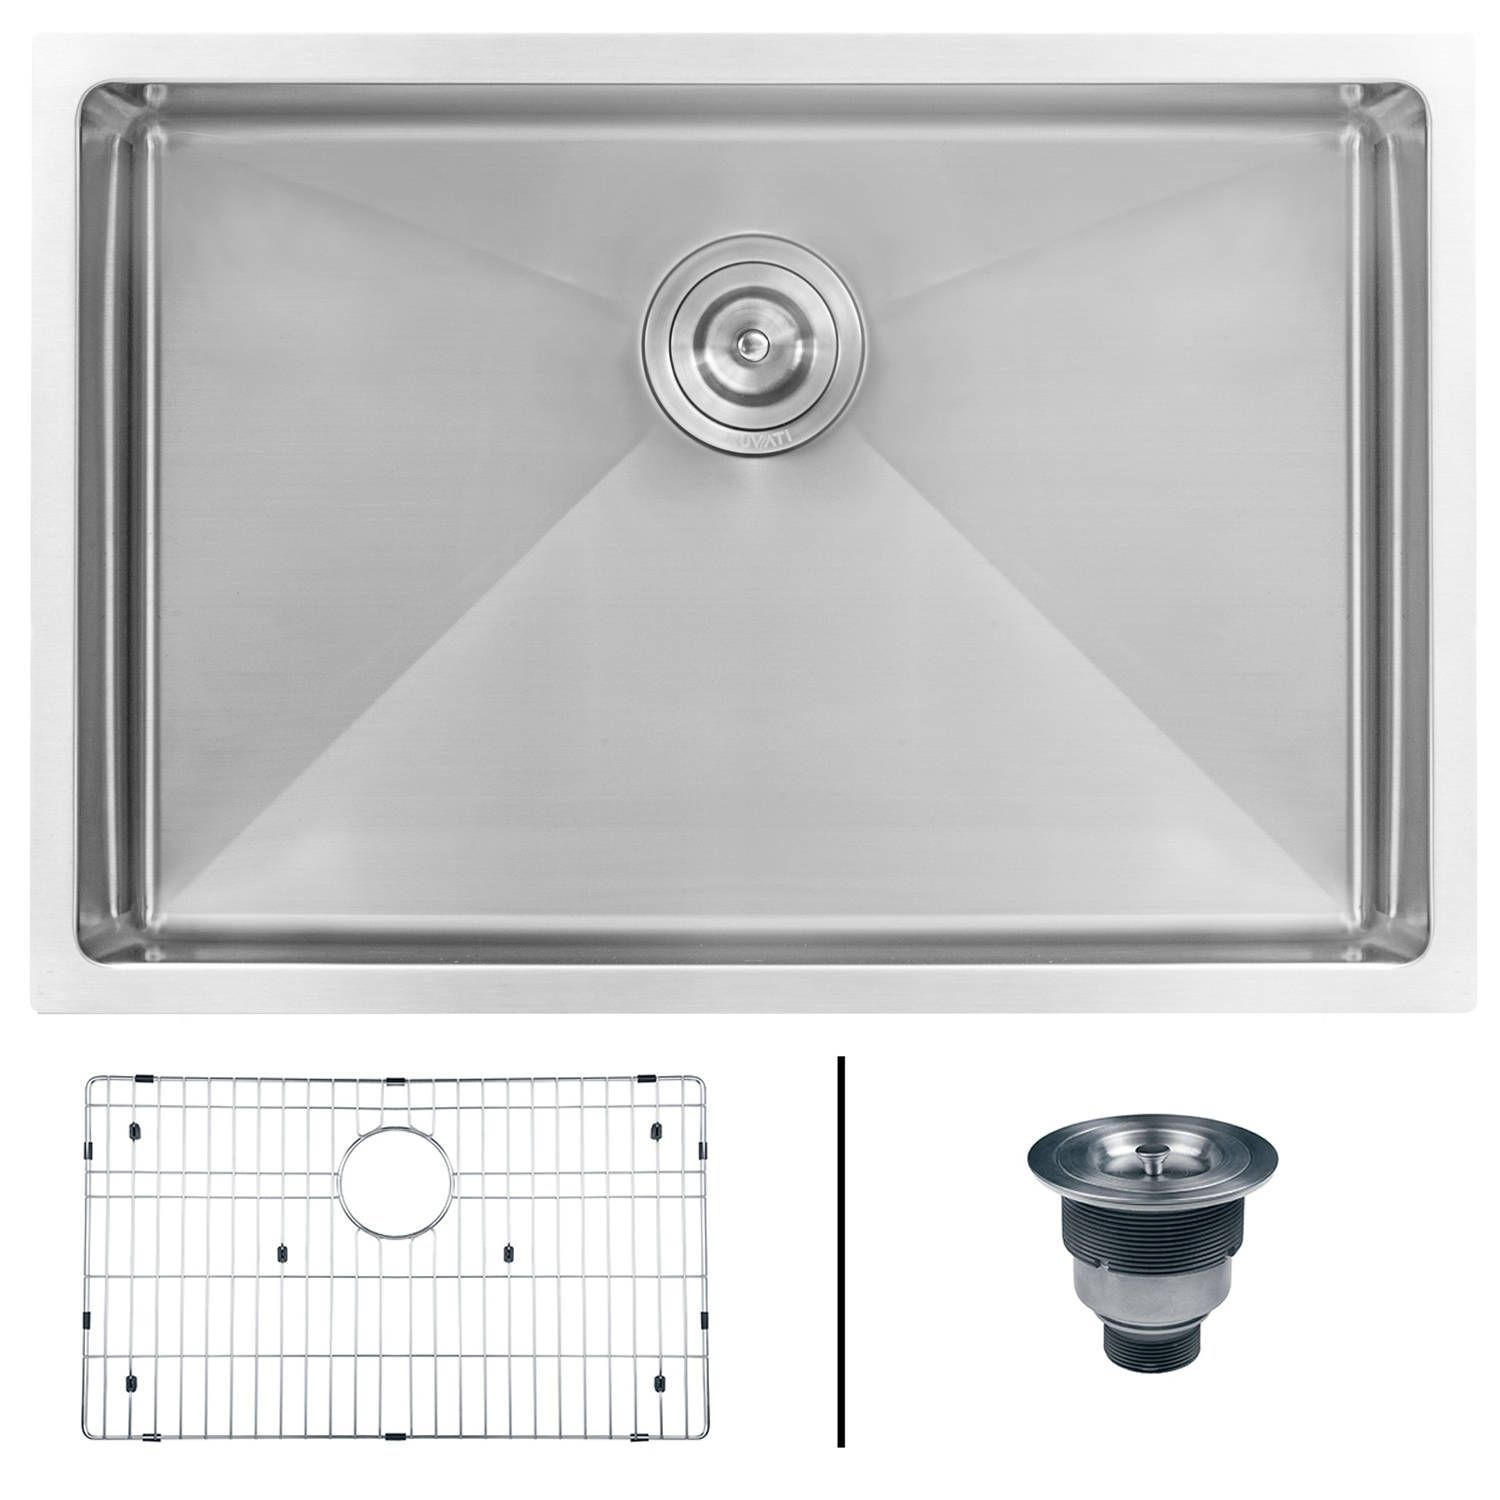 Kitchen Sinks Remodeling Ruvati 26 Inch Undermount 16 Gauge Tight Radius Stainles Stainless Steel Kitchen Sink Single Bowl Kitchen Sink Stainless Steel Kitchen